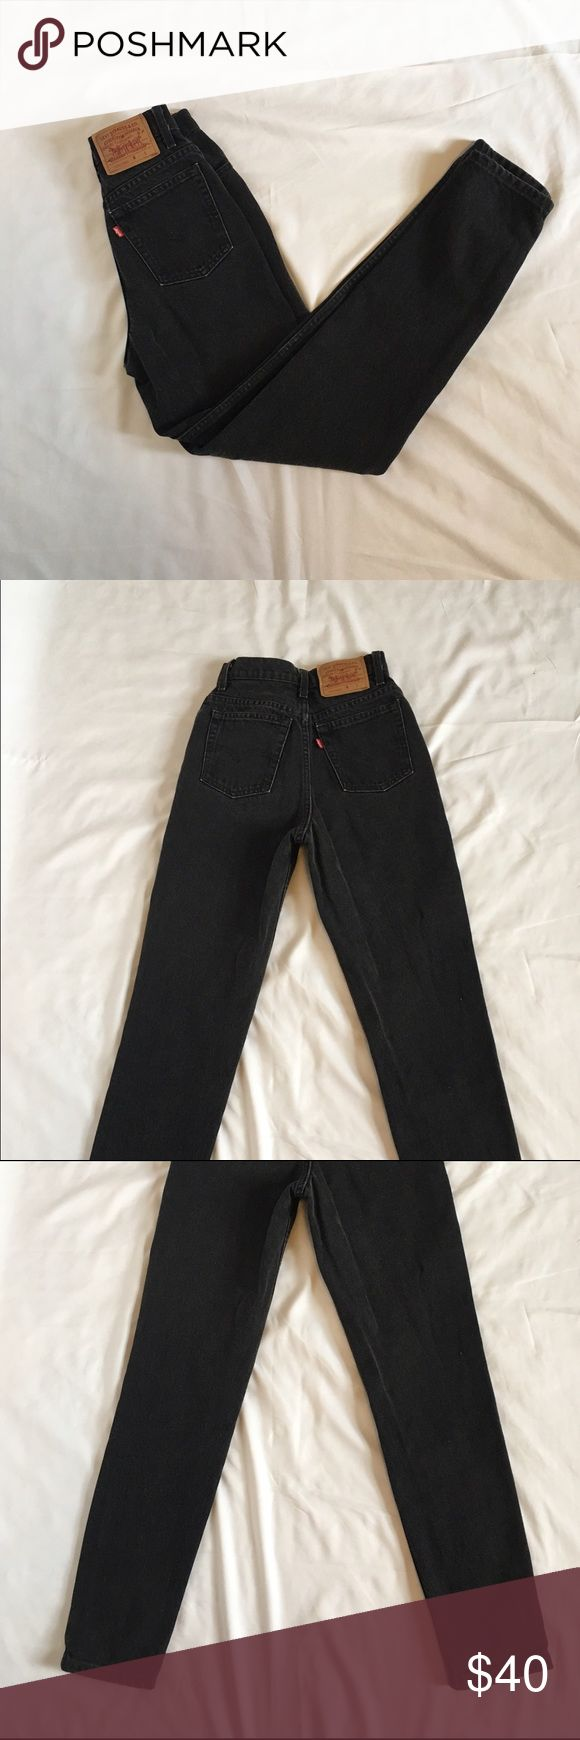 "Black Levi's Jeans Black, slim fit, tapered leg. Made in USA. Size 3. Waist: 24"", Hips: 33"", Inseam: 29"", Ankle: 5.5"" Levi's Jeans Straight Leg"